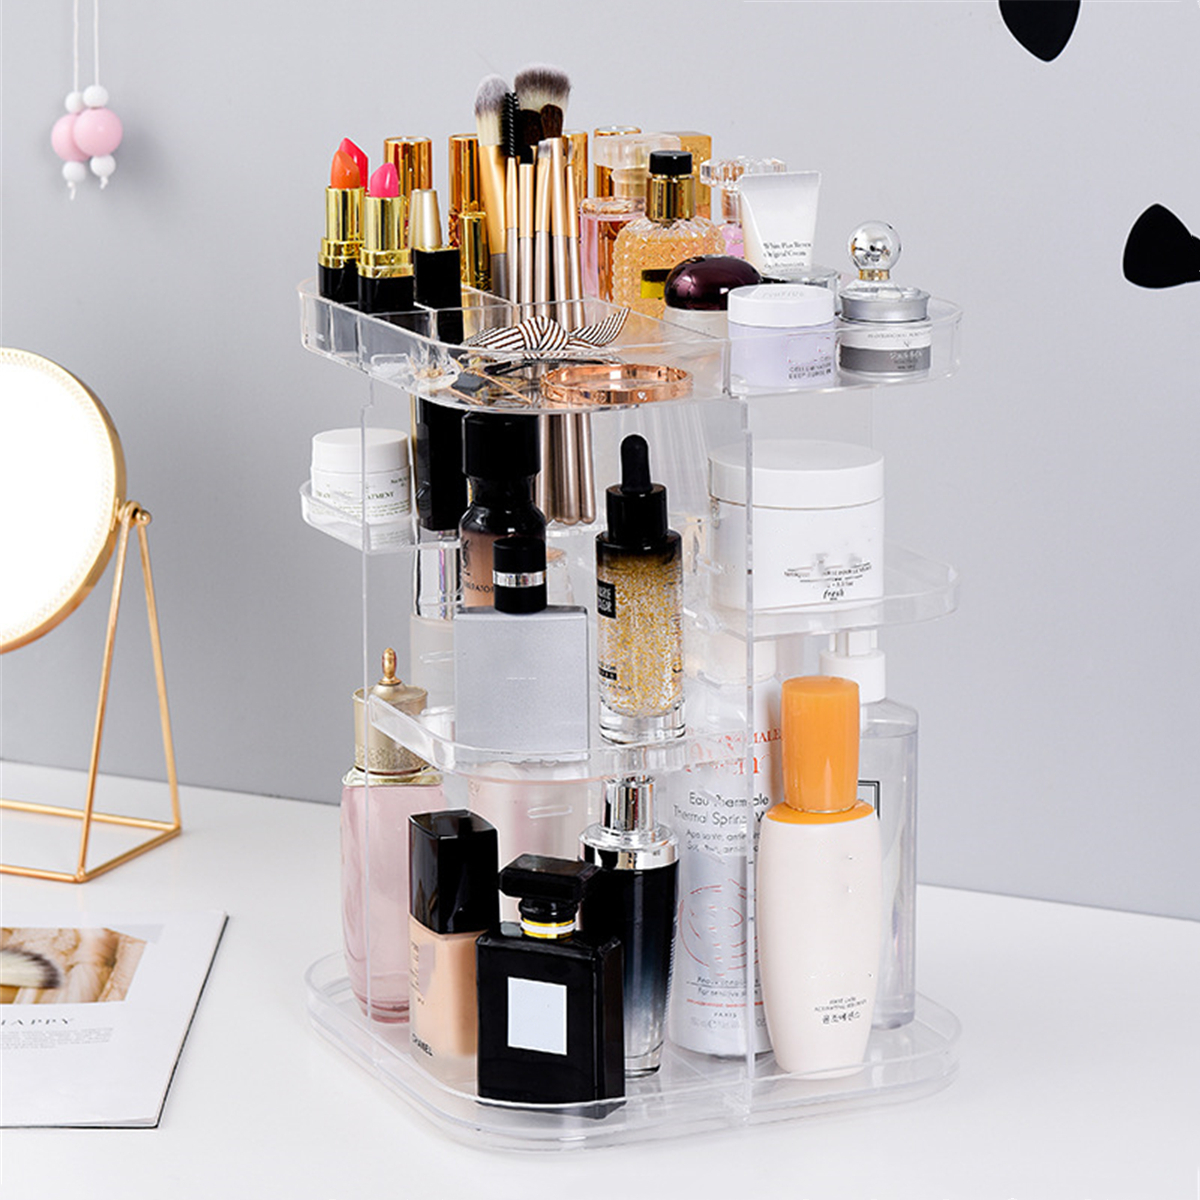 Details About 360 Degree Rotating Cosmetic Makeup Organizer Adjustable  Storage Box Shelves